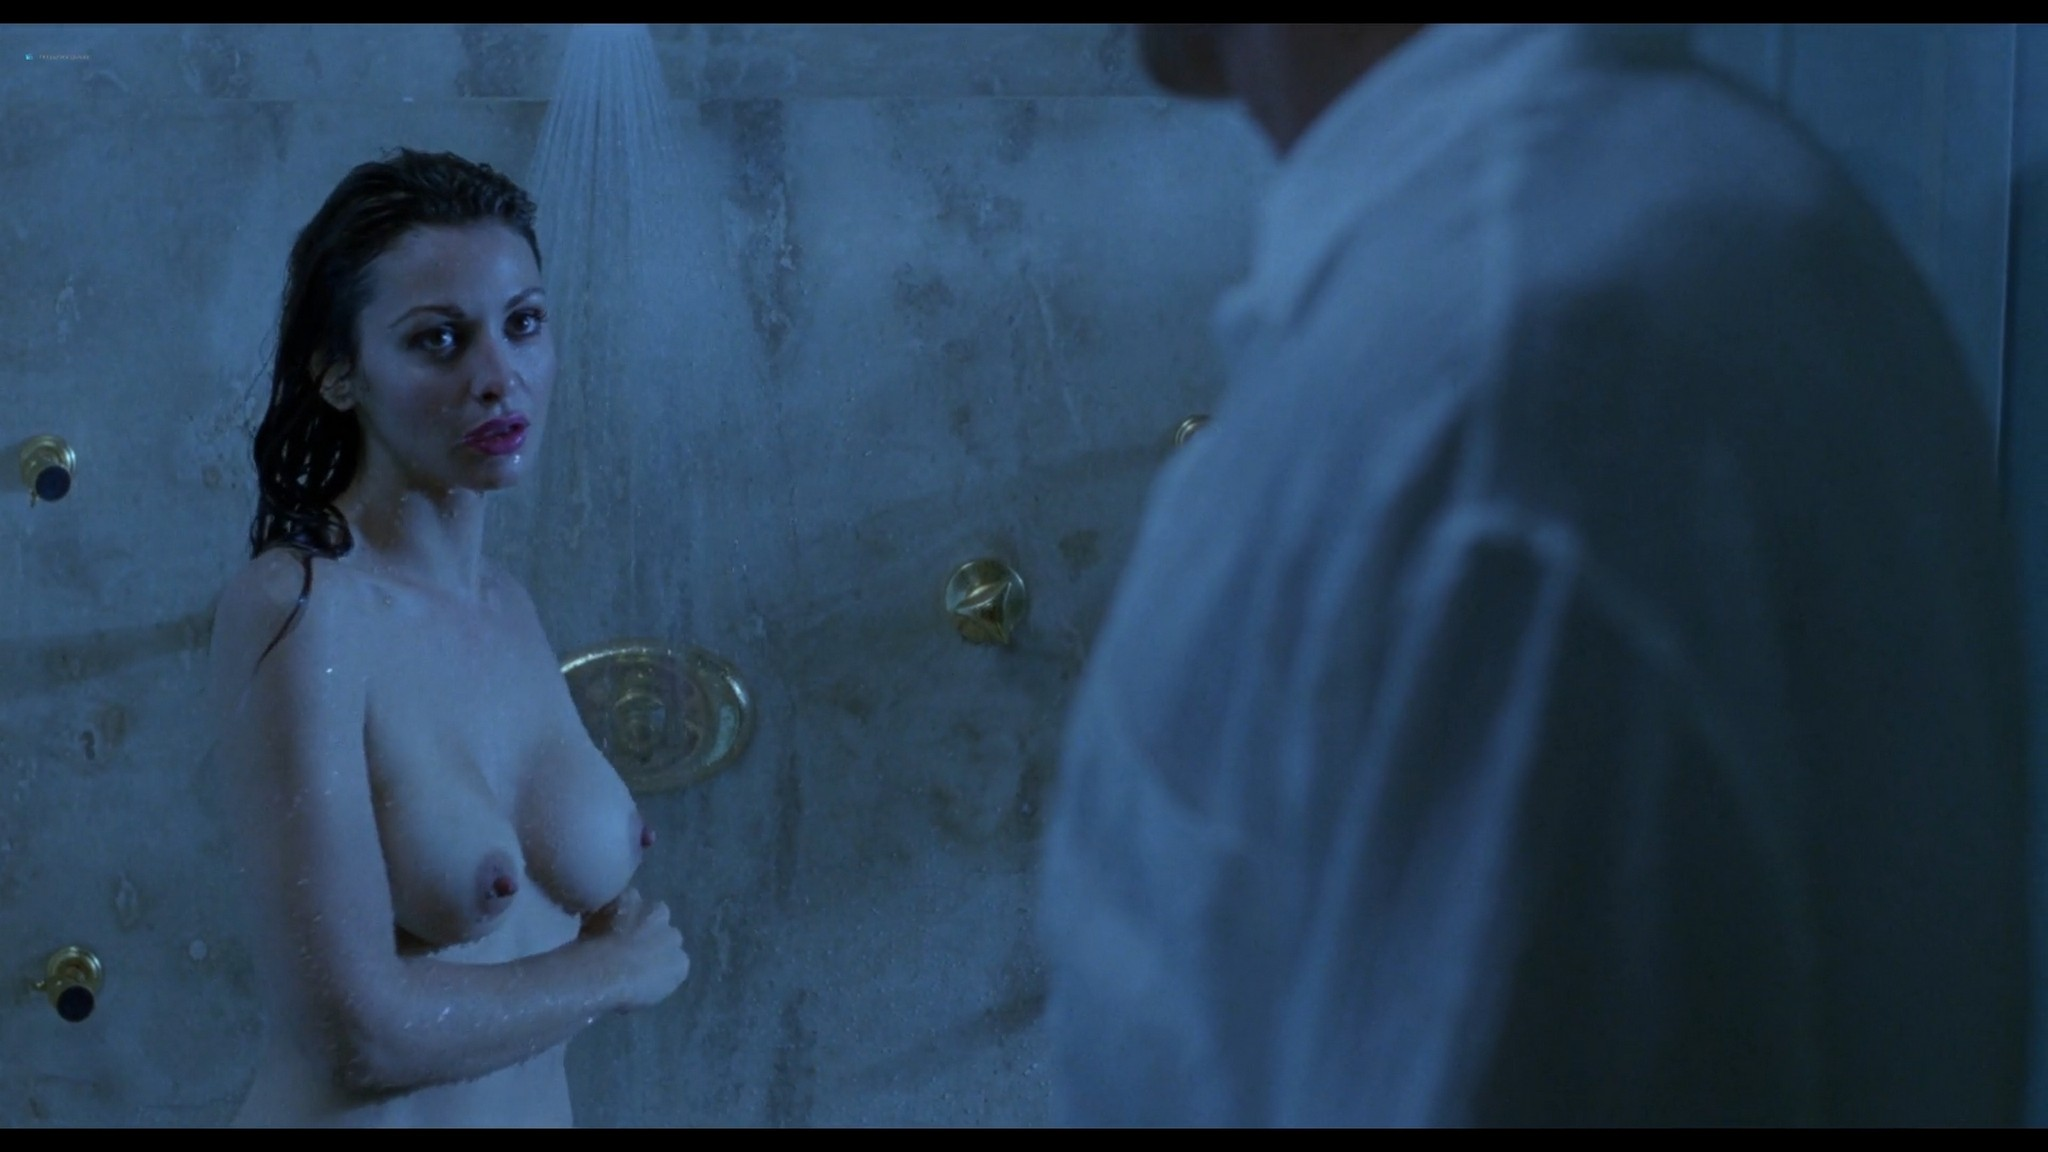 Shannon Tweed nude sex Adrienne Sachs nude sex in the shower In the Cold of the Night 1989 1080p BluRay 8